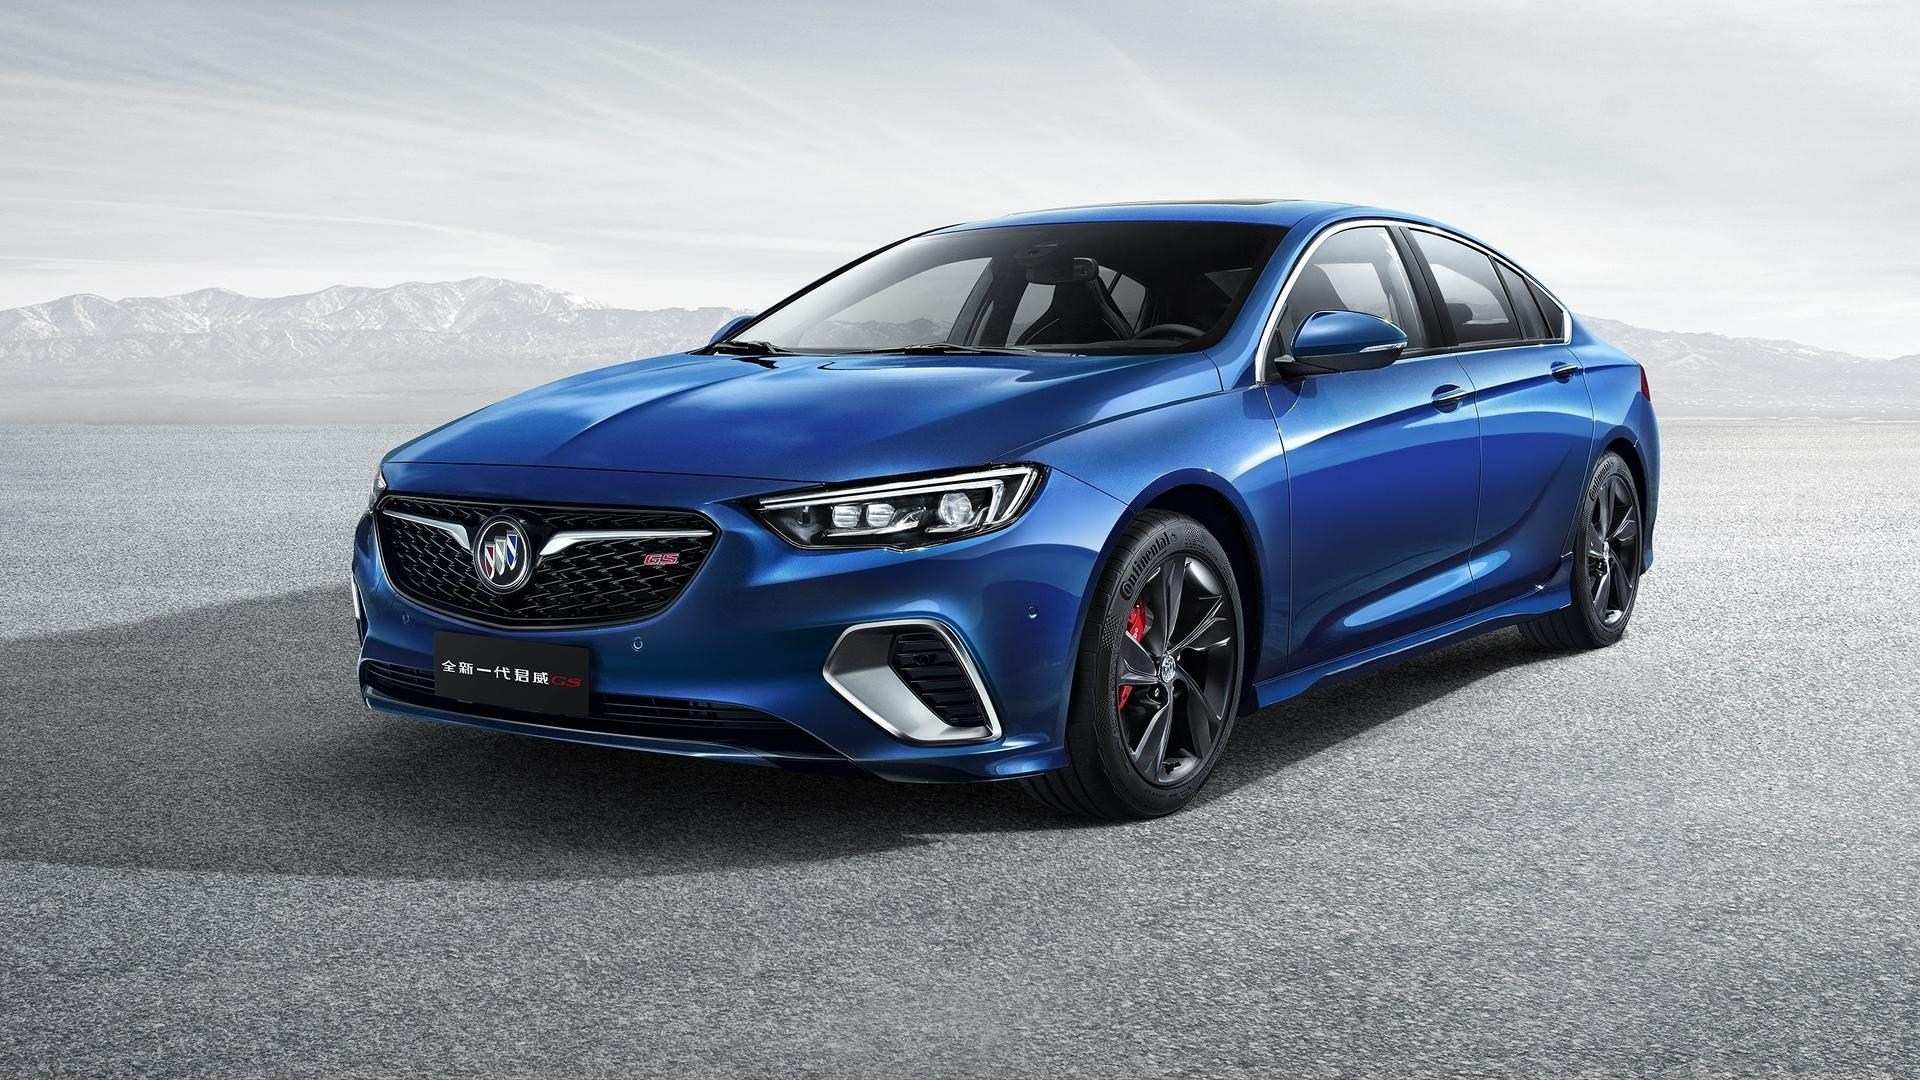 21 Great New Buick Concept 2019 Redesign Interior by New Buick Concept 2019 Redesign